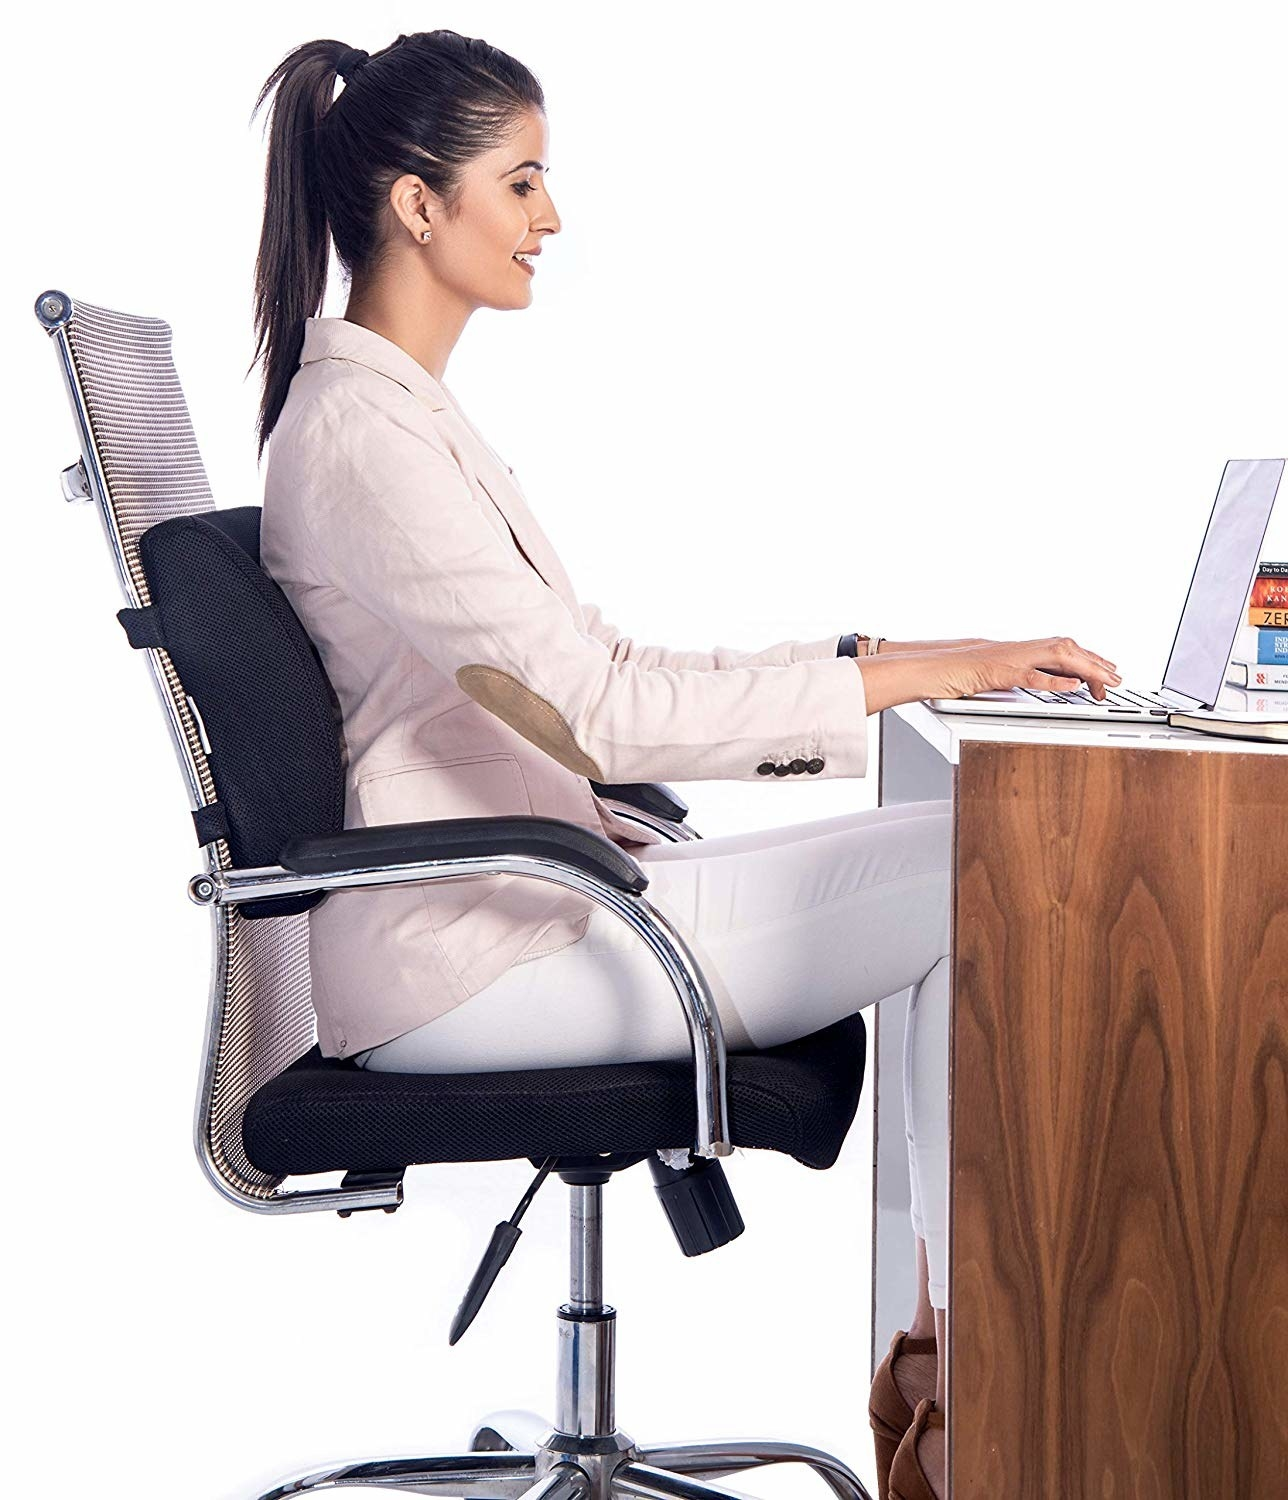 A woman working at her desk with the cushion attached to the chair.